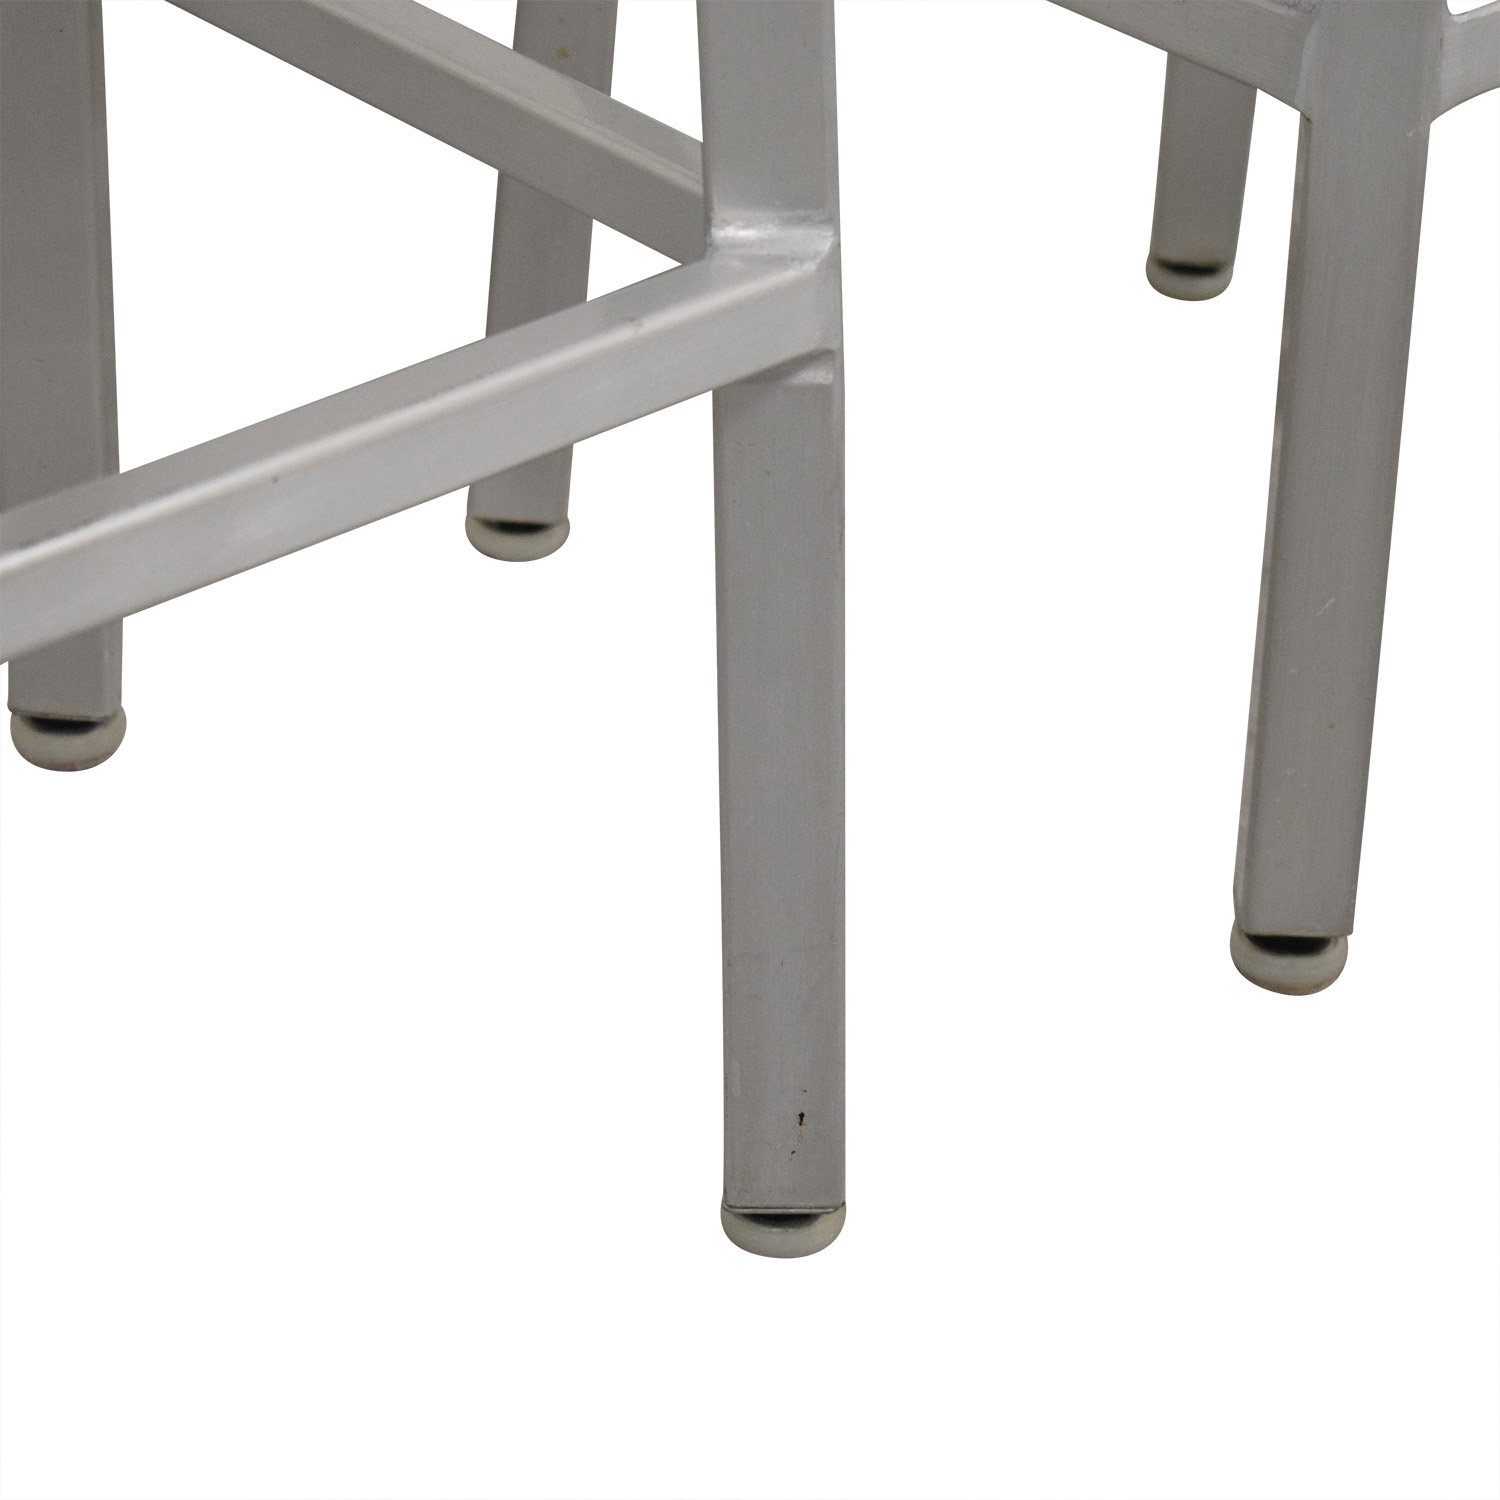 buy Crate & Barrel Spin Swivel Backless Counter Stool Crate & Barrel Chairs